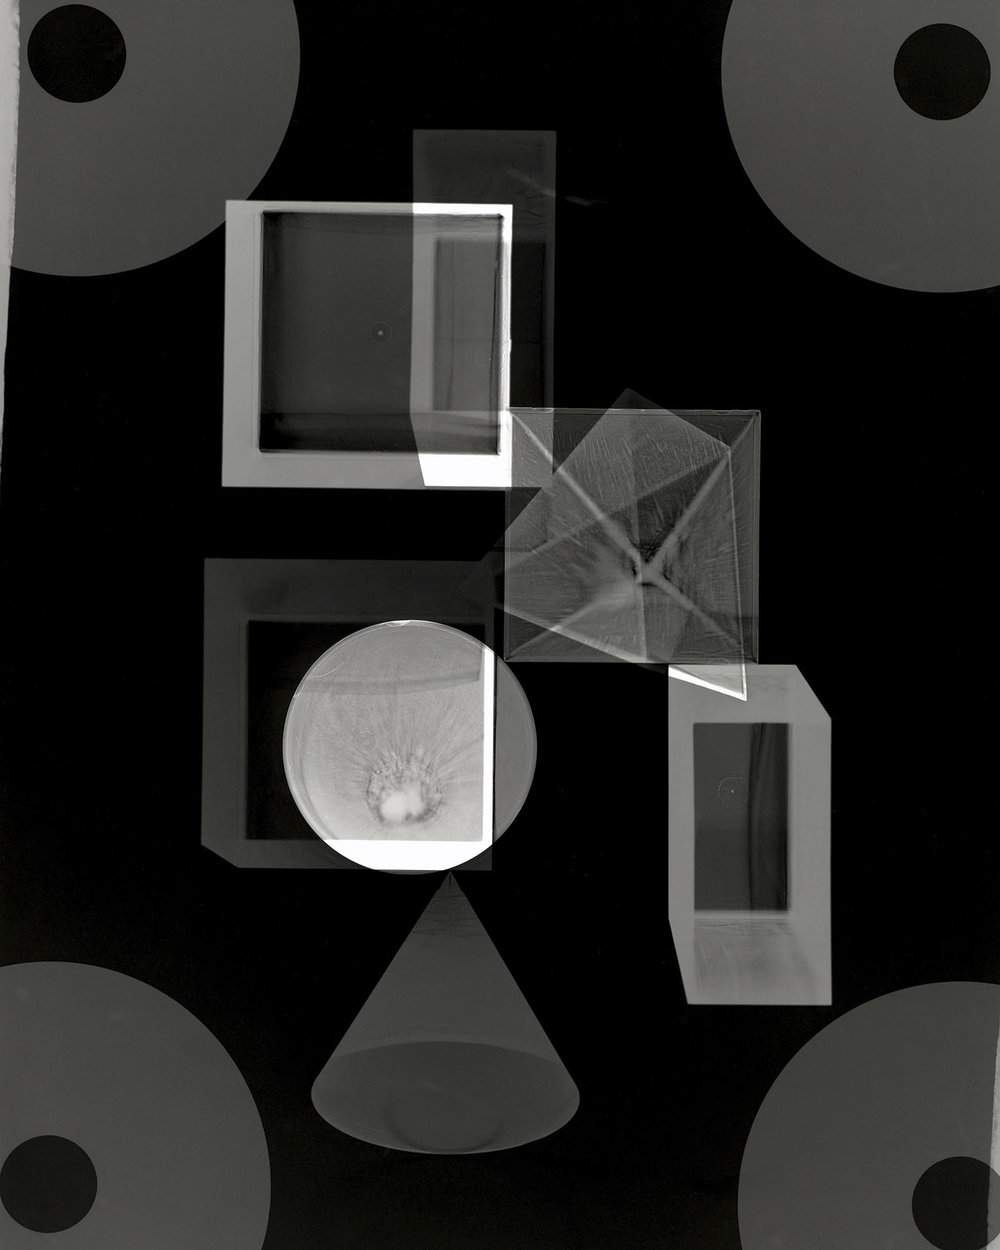 FORMS AND RECORDS BW NO. 3 (2014)